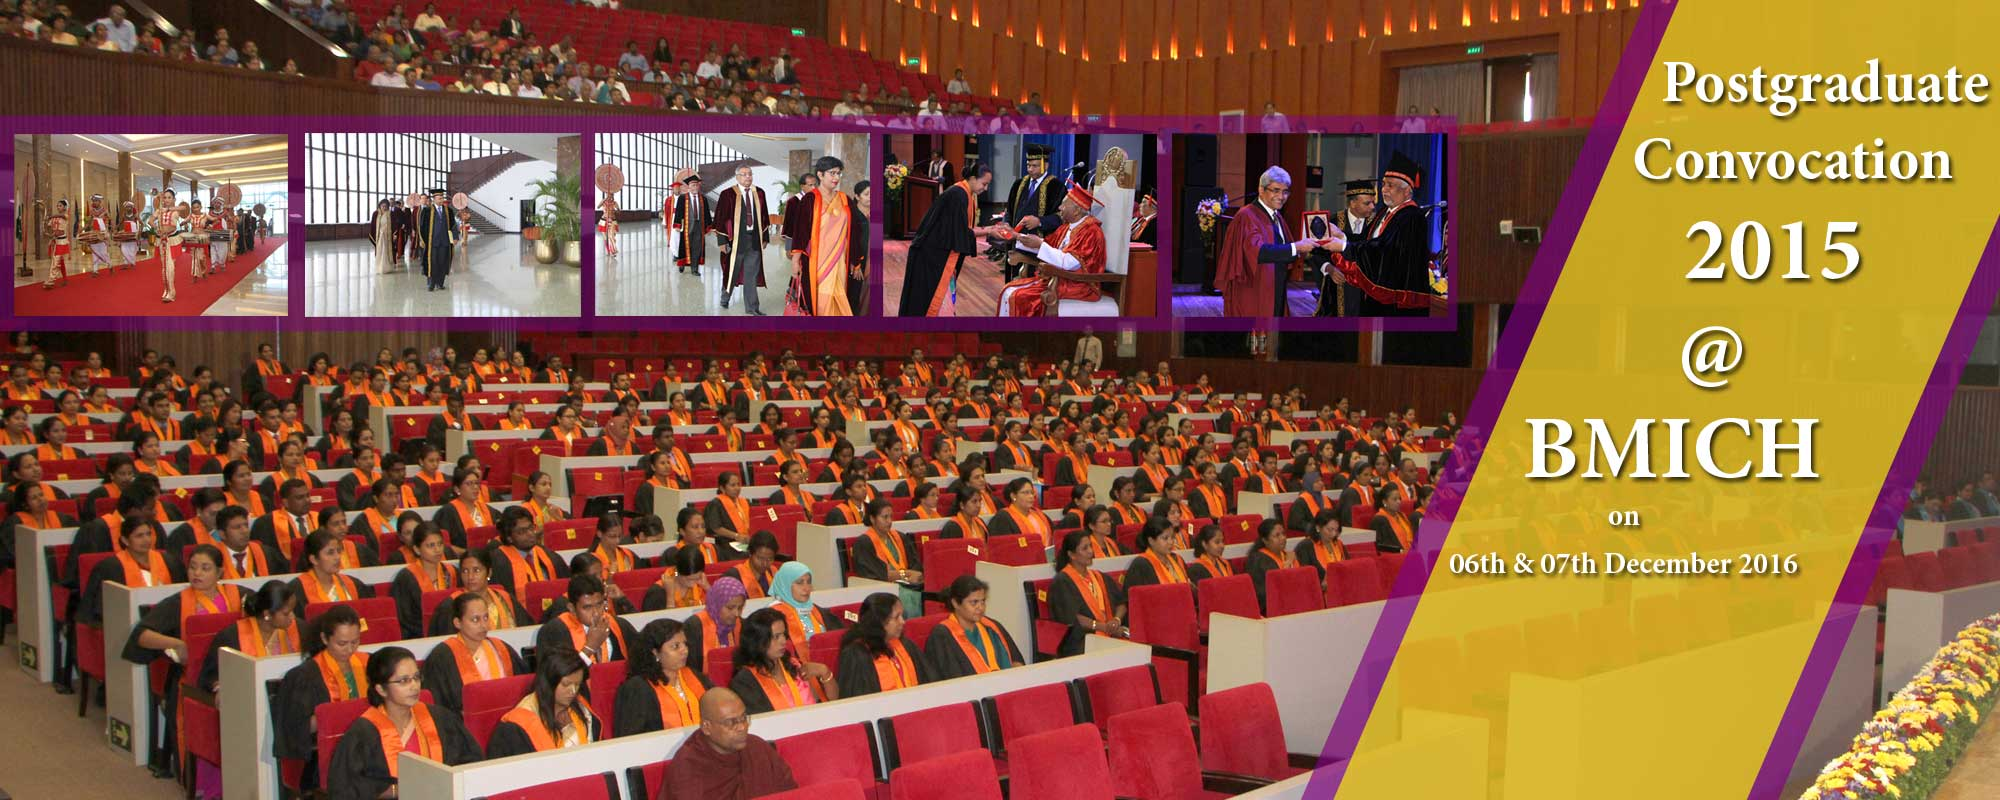 Postgraduate Convocation 2015